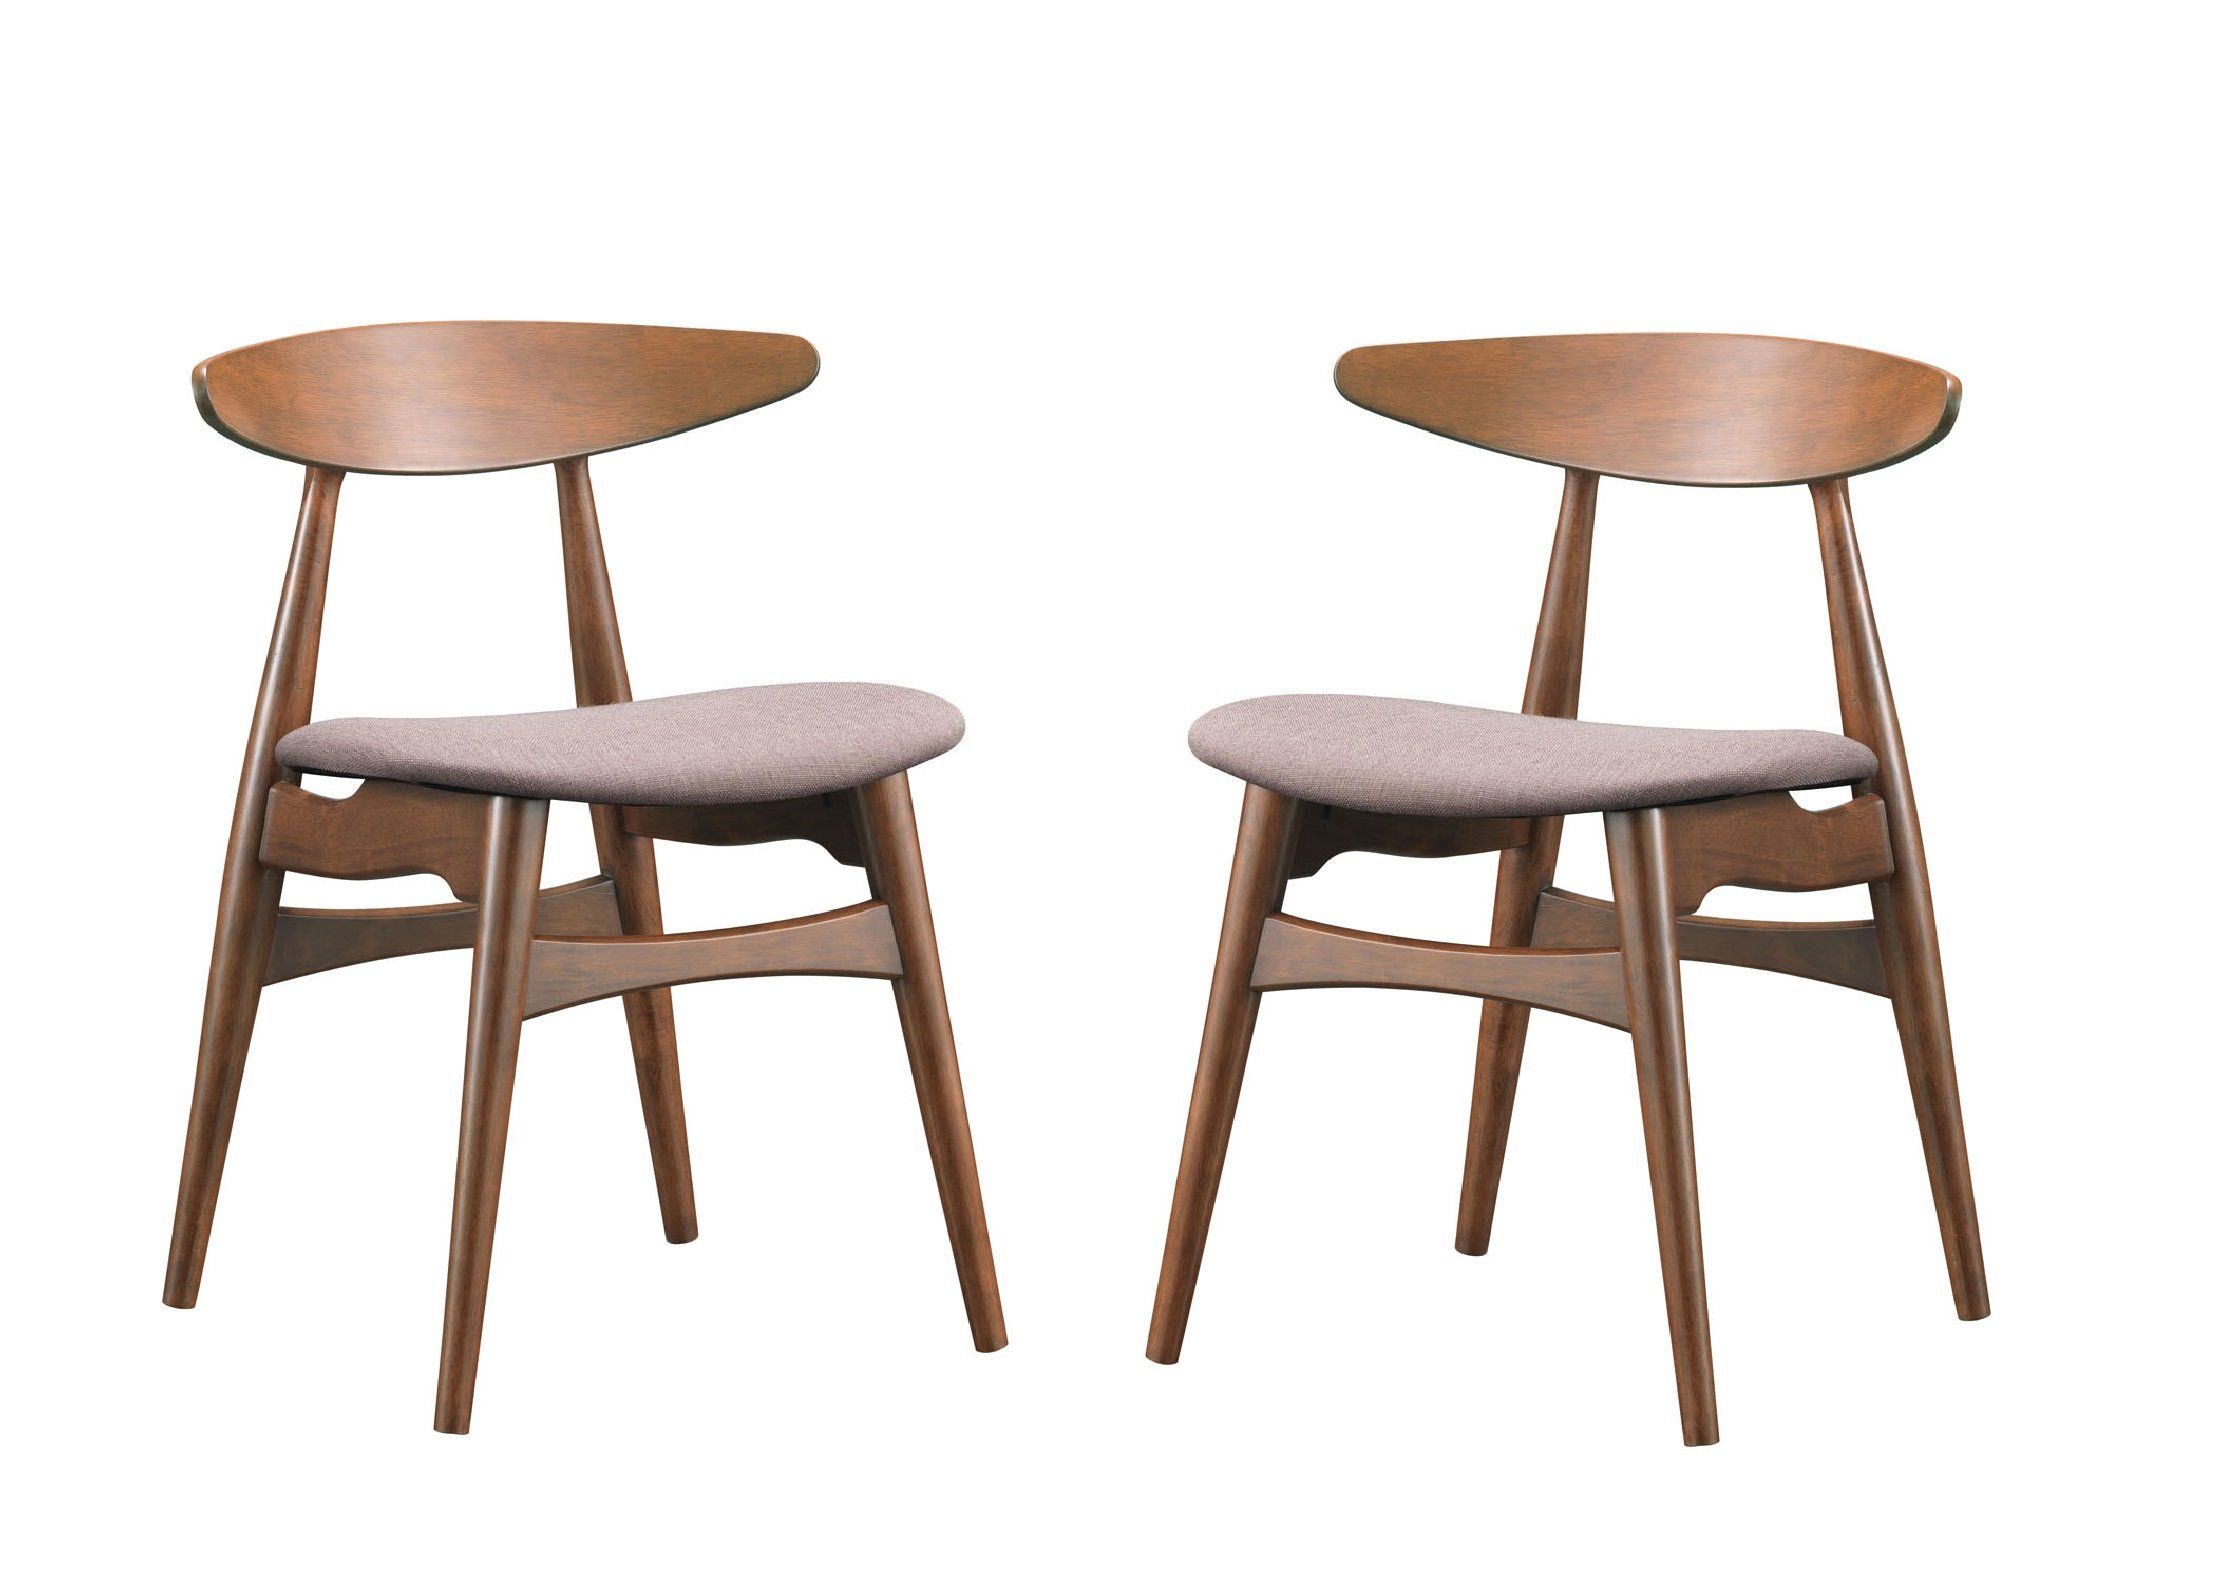 Baxton Studio Set of 2 Flamingo Mid-Century Dark Walnut Wood and Grey Faux Leather Dining Chairs - Mid-Century design set of 2 dining chairs Solid rubber wood with dark walnut veneer finishing, twill fabric Grey fabric with foam padding - kitchen-dining-room-furniture, kitchen-dining-room, kitchen-dining-room-chairs - 715OaGTOOXL -